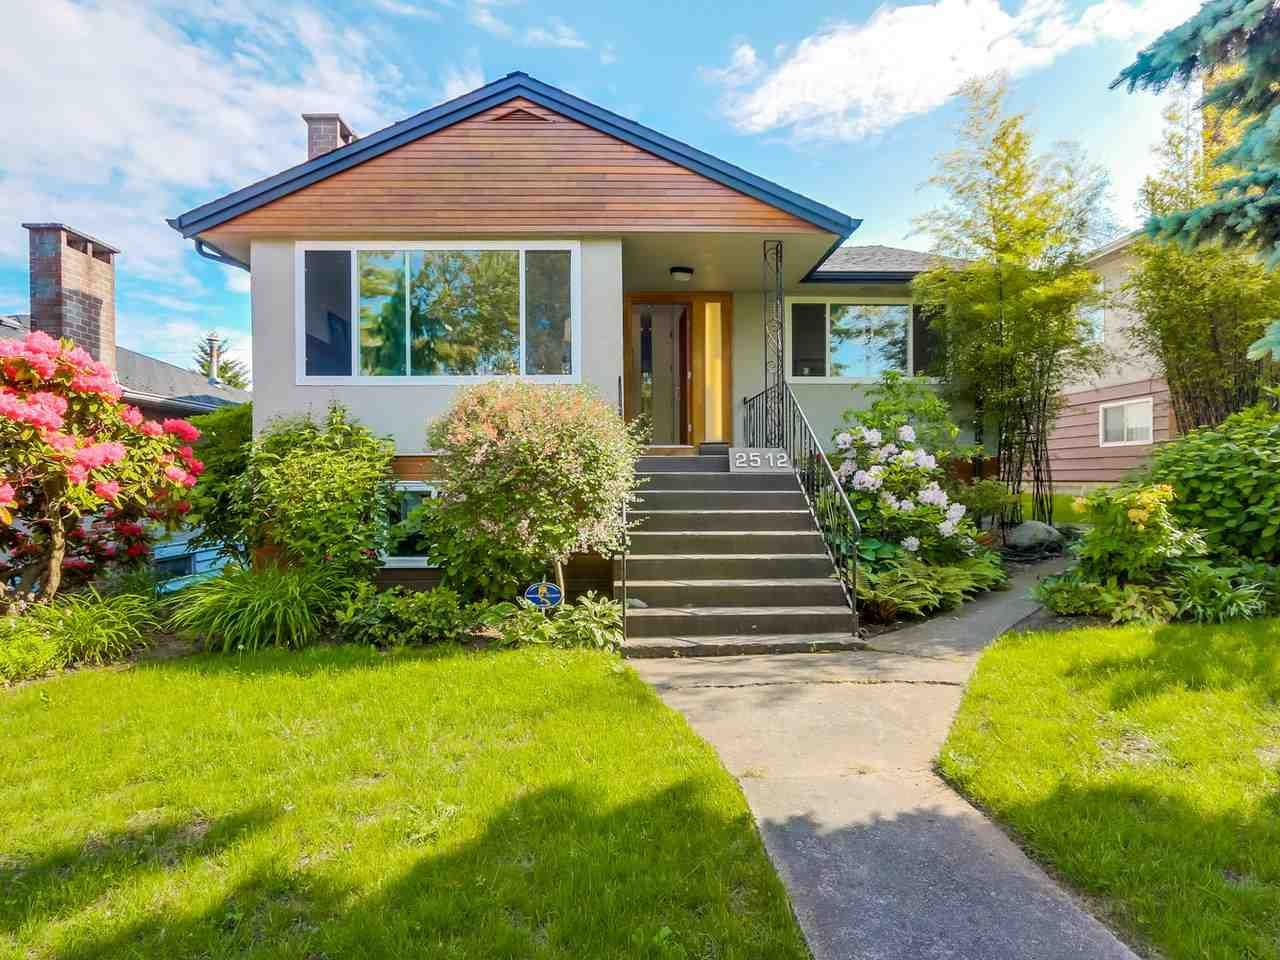 Main Photo: 2512 E 29TH Avenue in Vancouver: Collingwood VE House for sale (Vancouver East)  : MLS®# R2297529